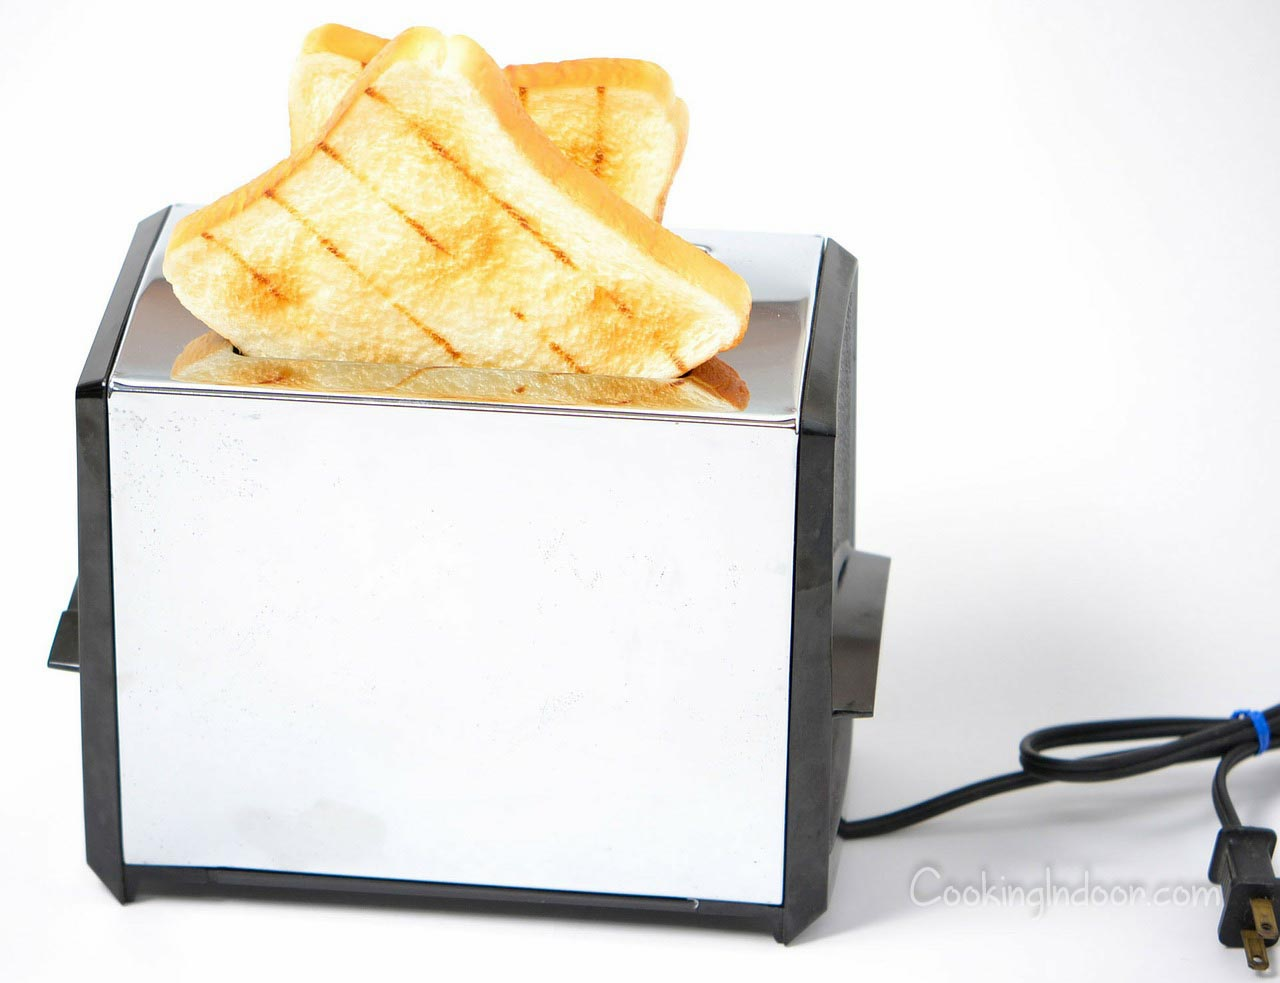 What type of energy is a toaster use